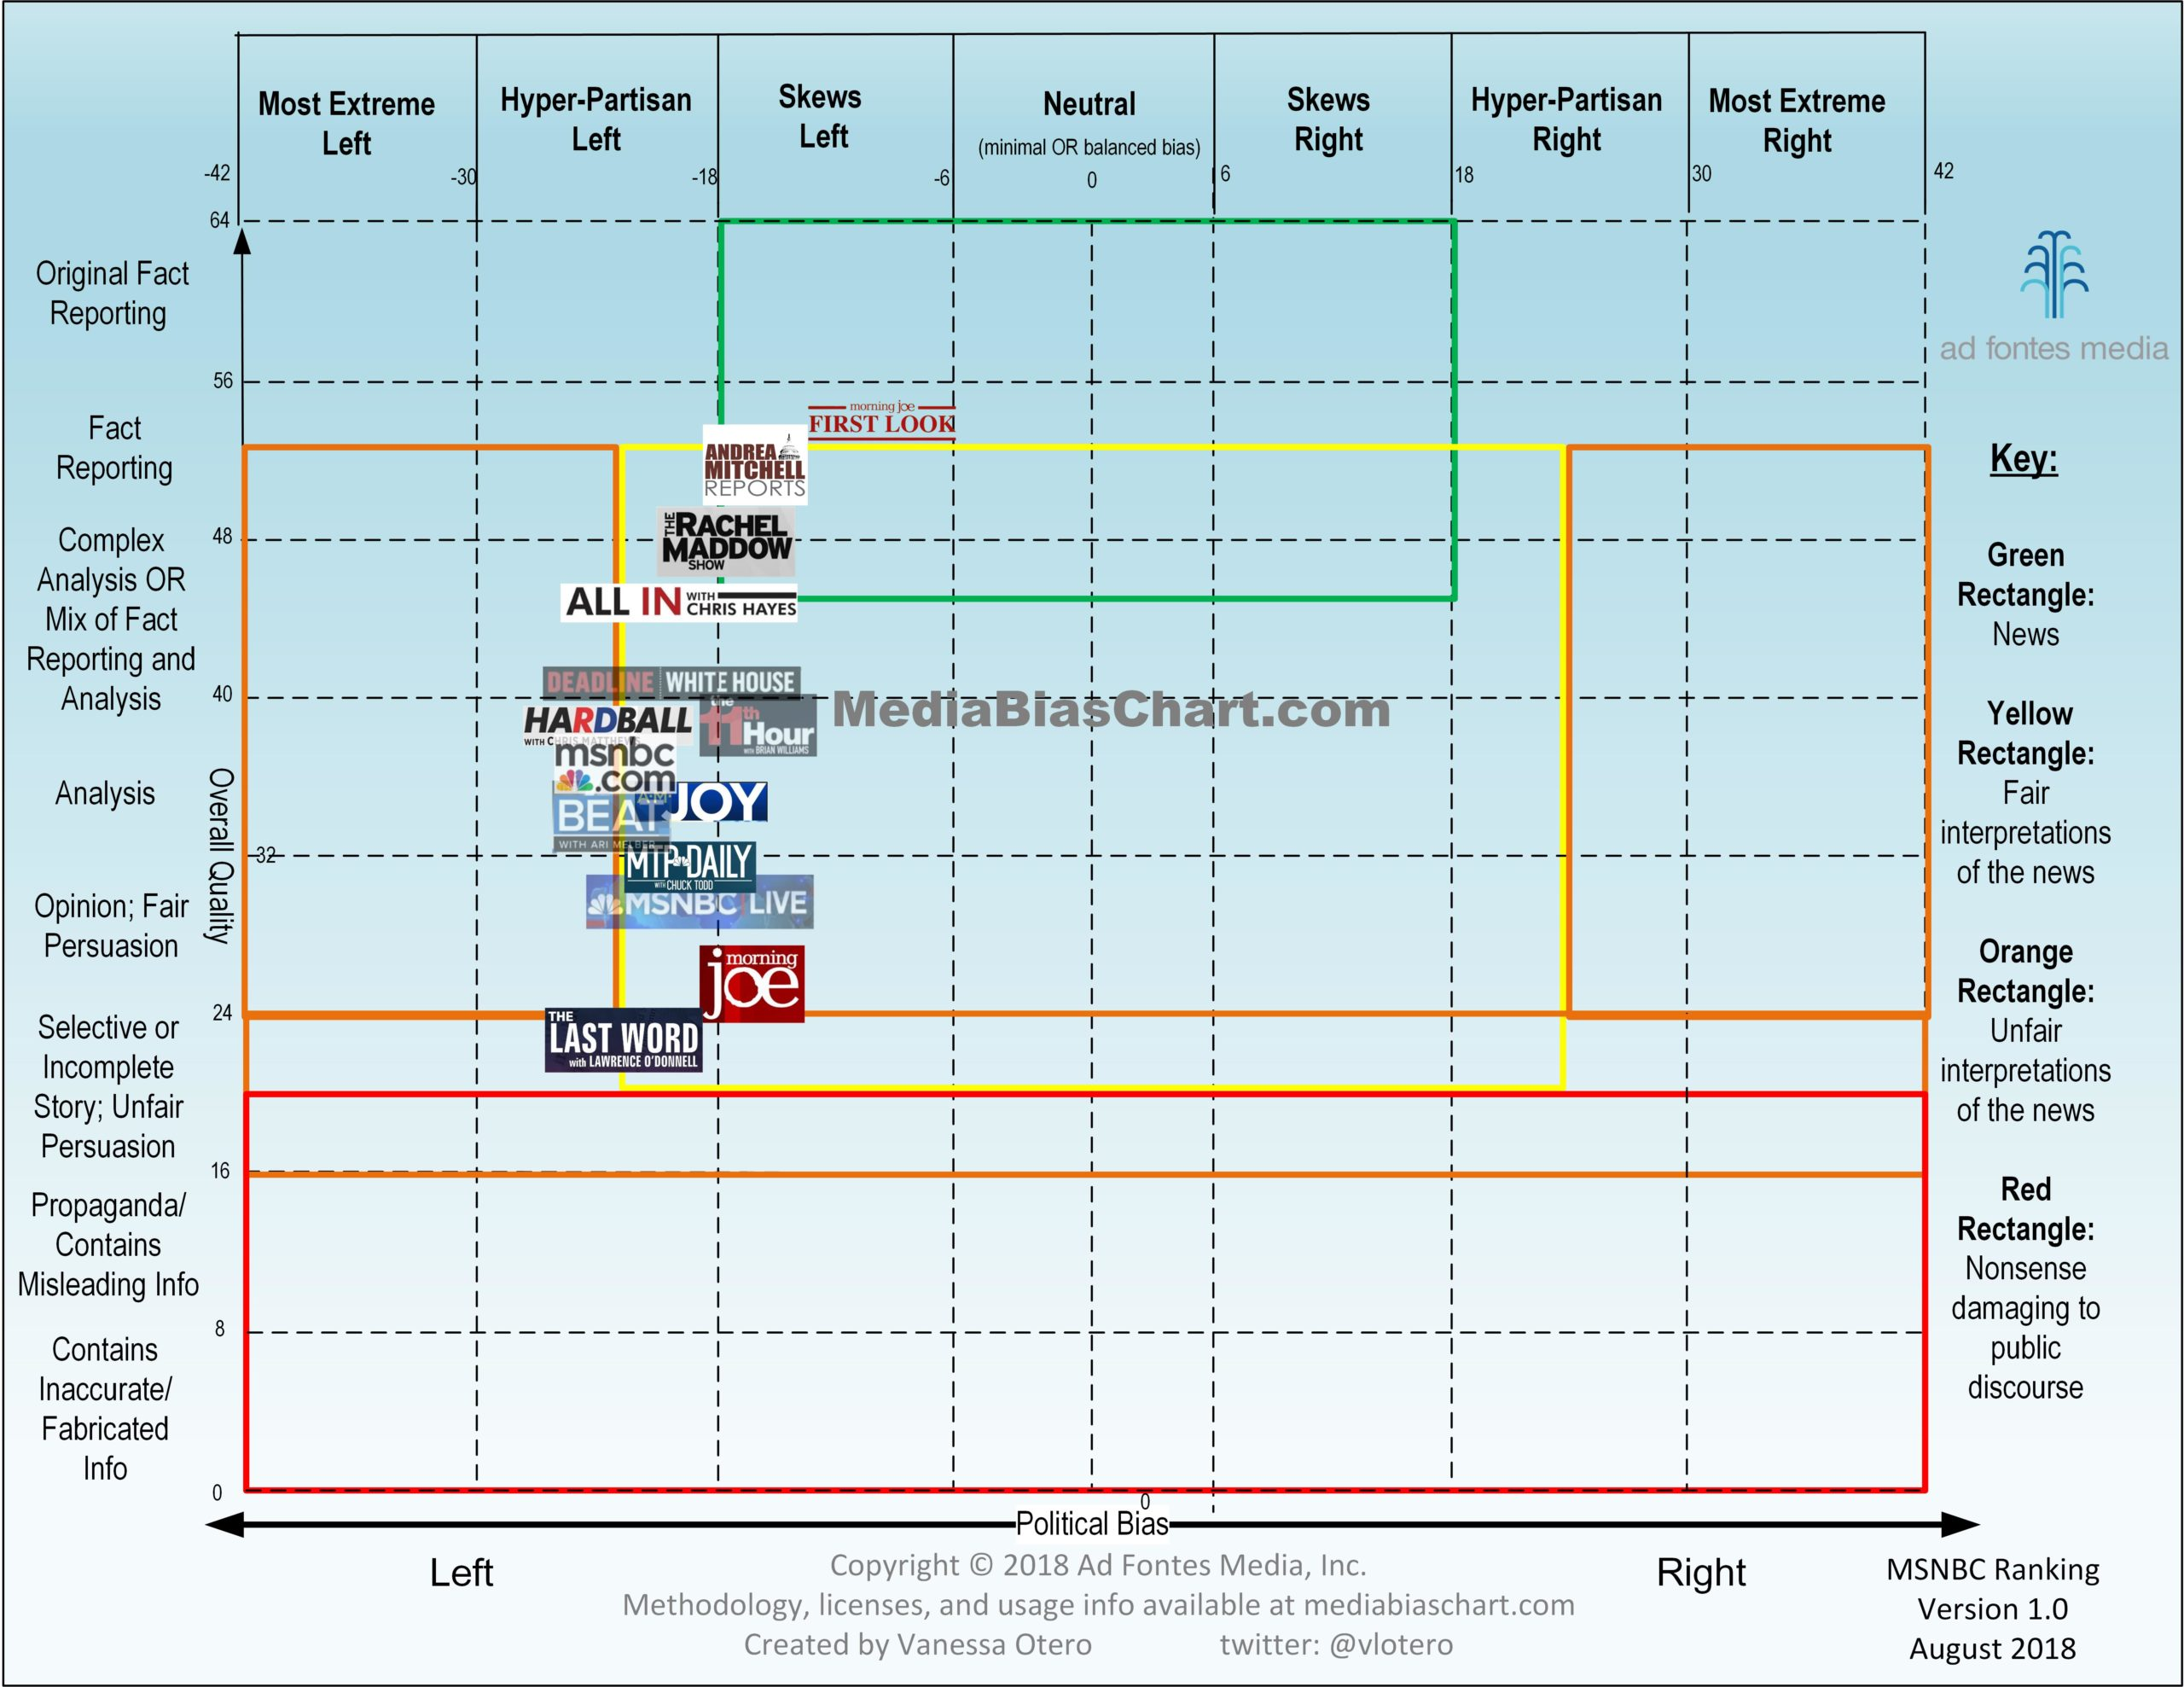 Media Bias Chart 4.0 MSNBC Version